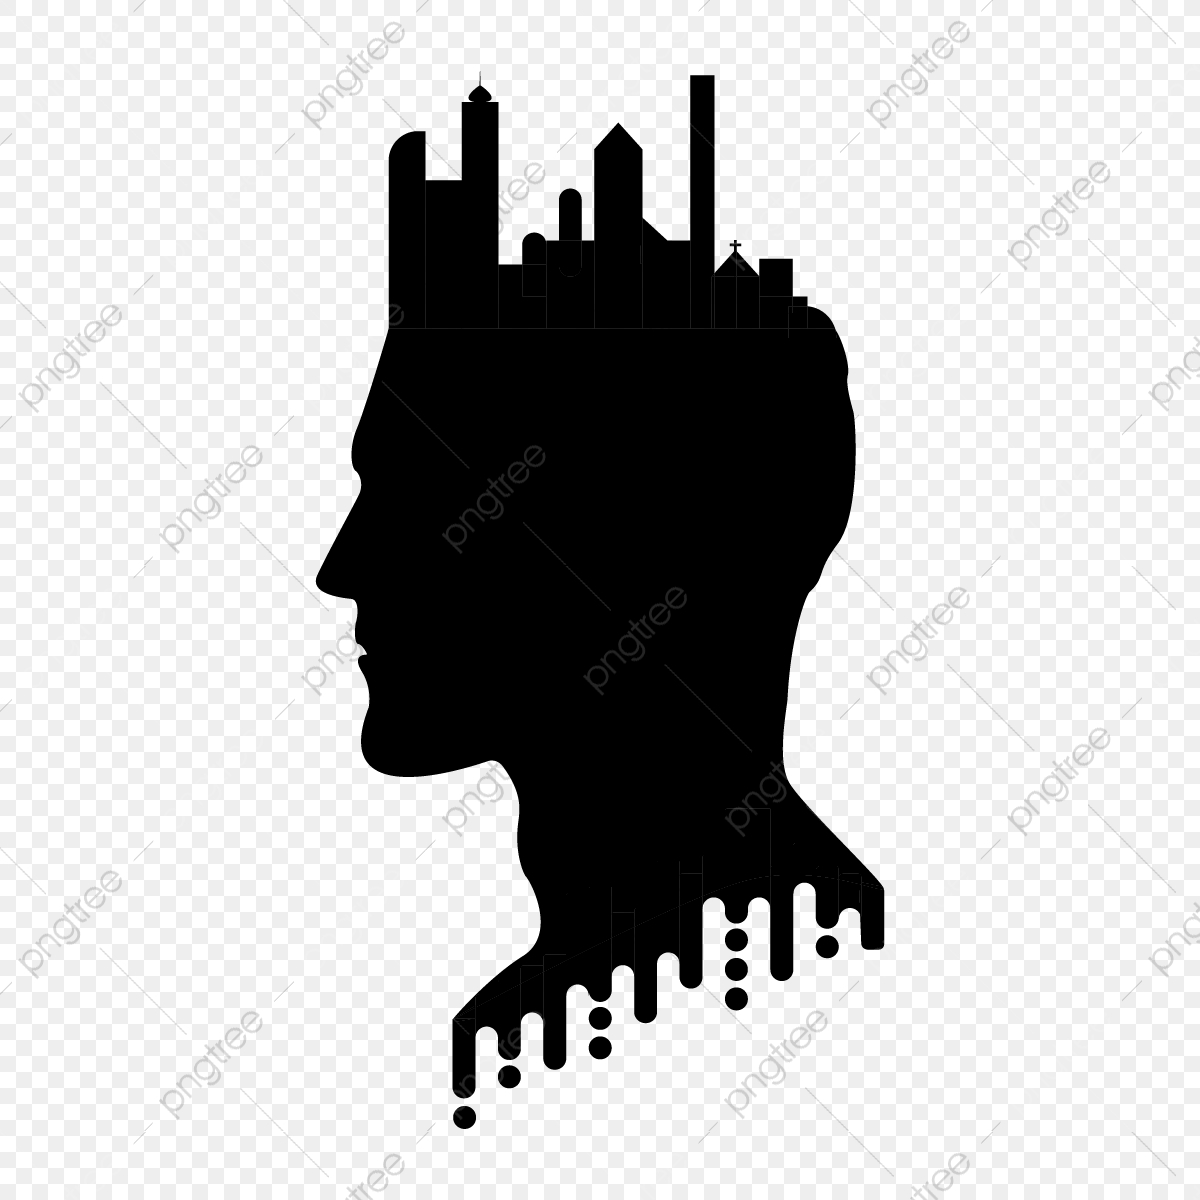 Skull Head Png Silhouette Clipart - free transparent png images - pngaaa.com